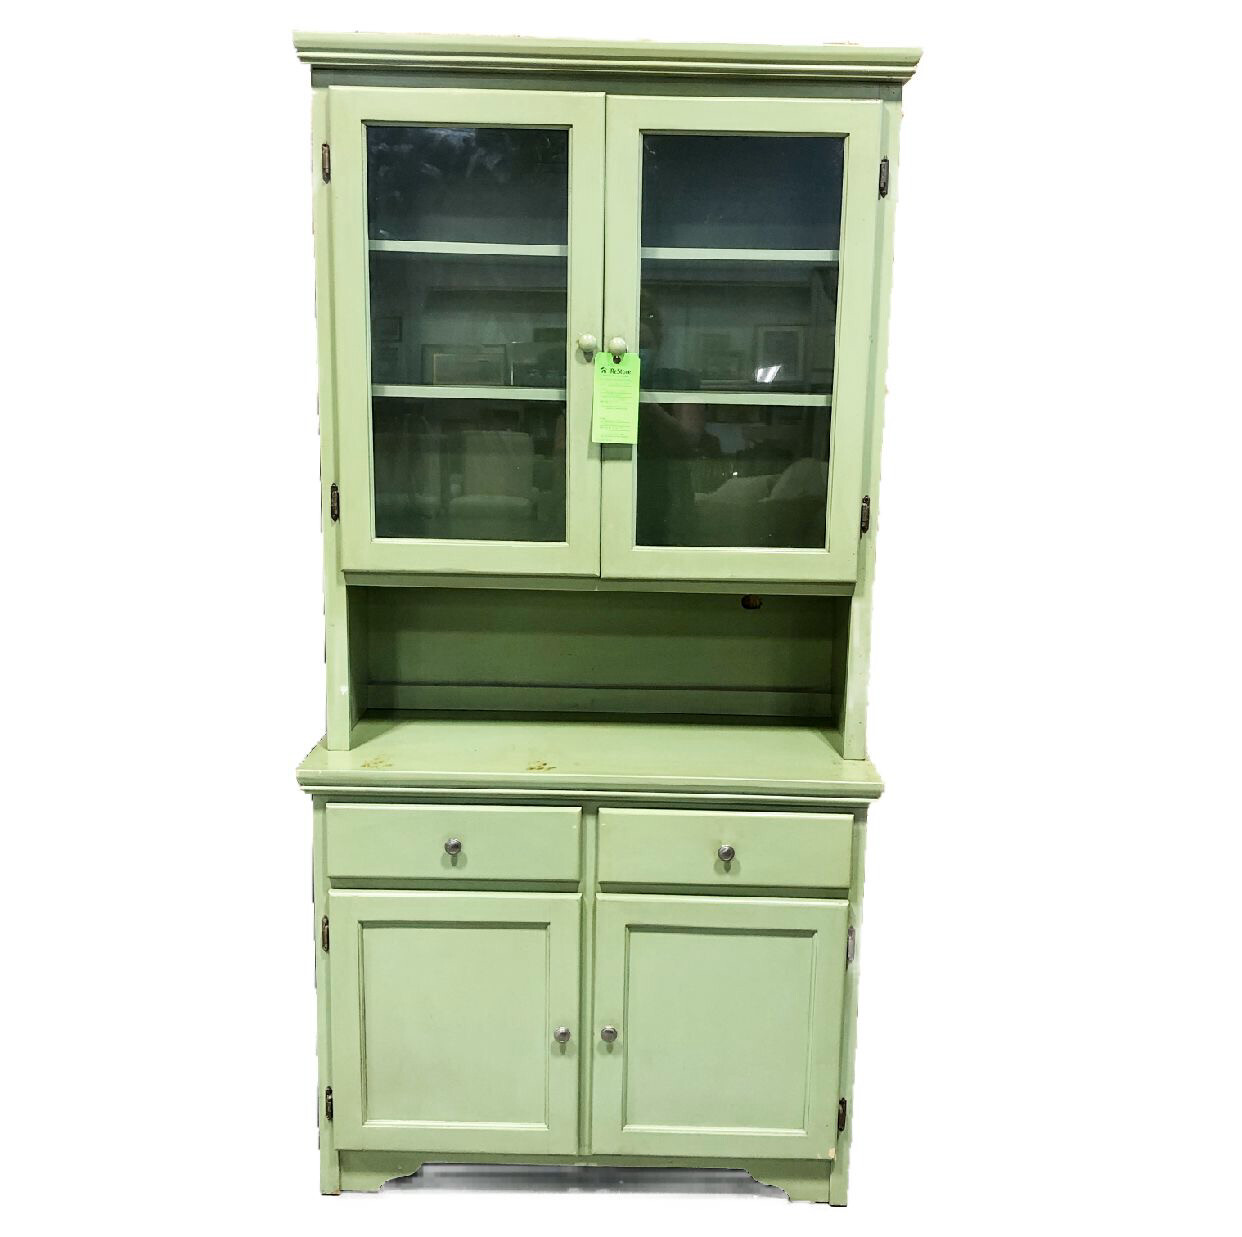 Painted Wooden Display Cabinet (2 piece)